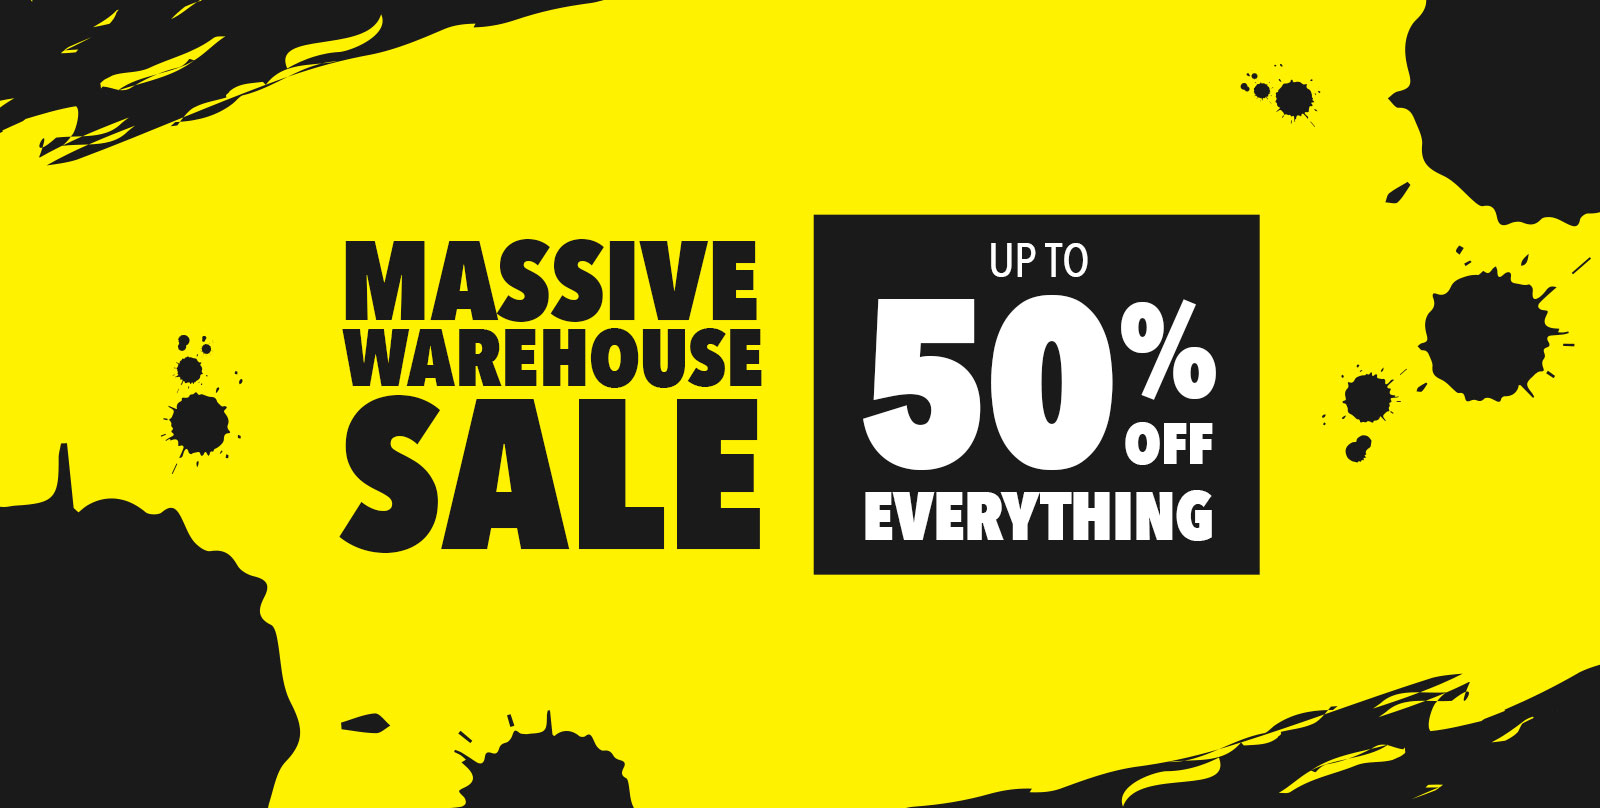 Warehouse Sale - Up To 50% Off Everything